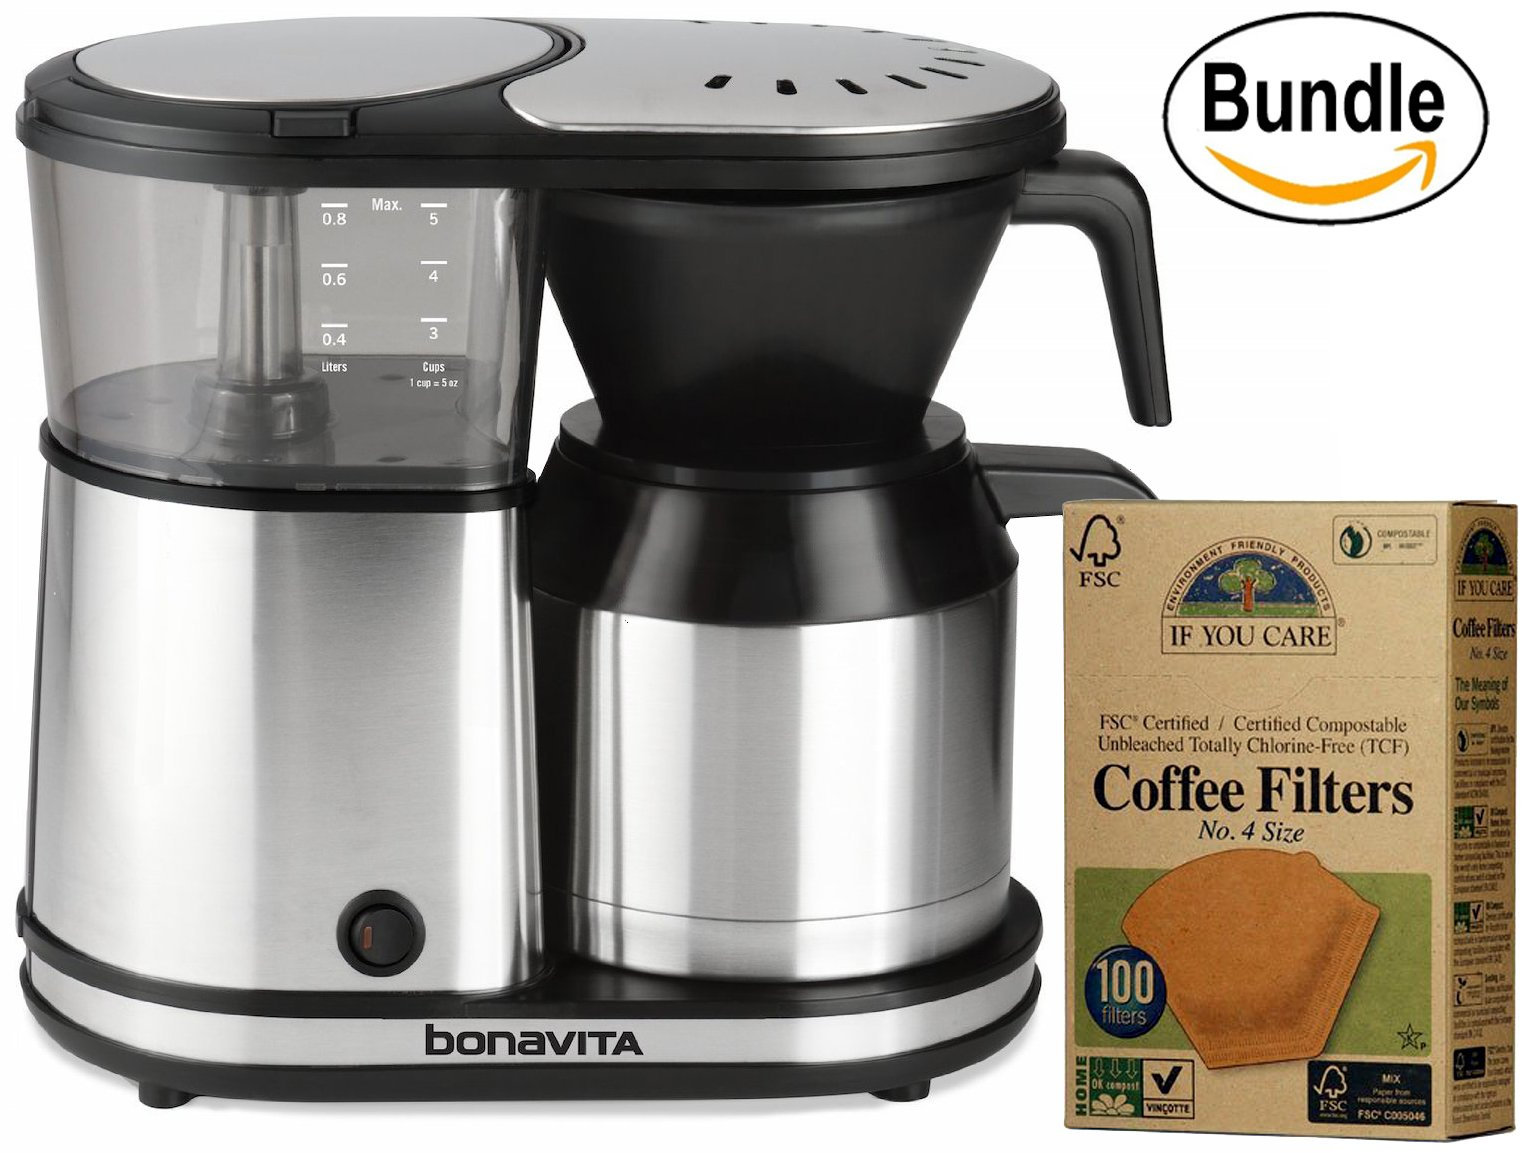 Bonavita BV1500TS 5-Cup Carafe Coffee Brewer & If You Care Coffee Filters, No. 4, 100 count. (Bundle)